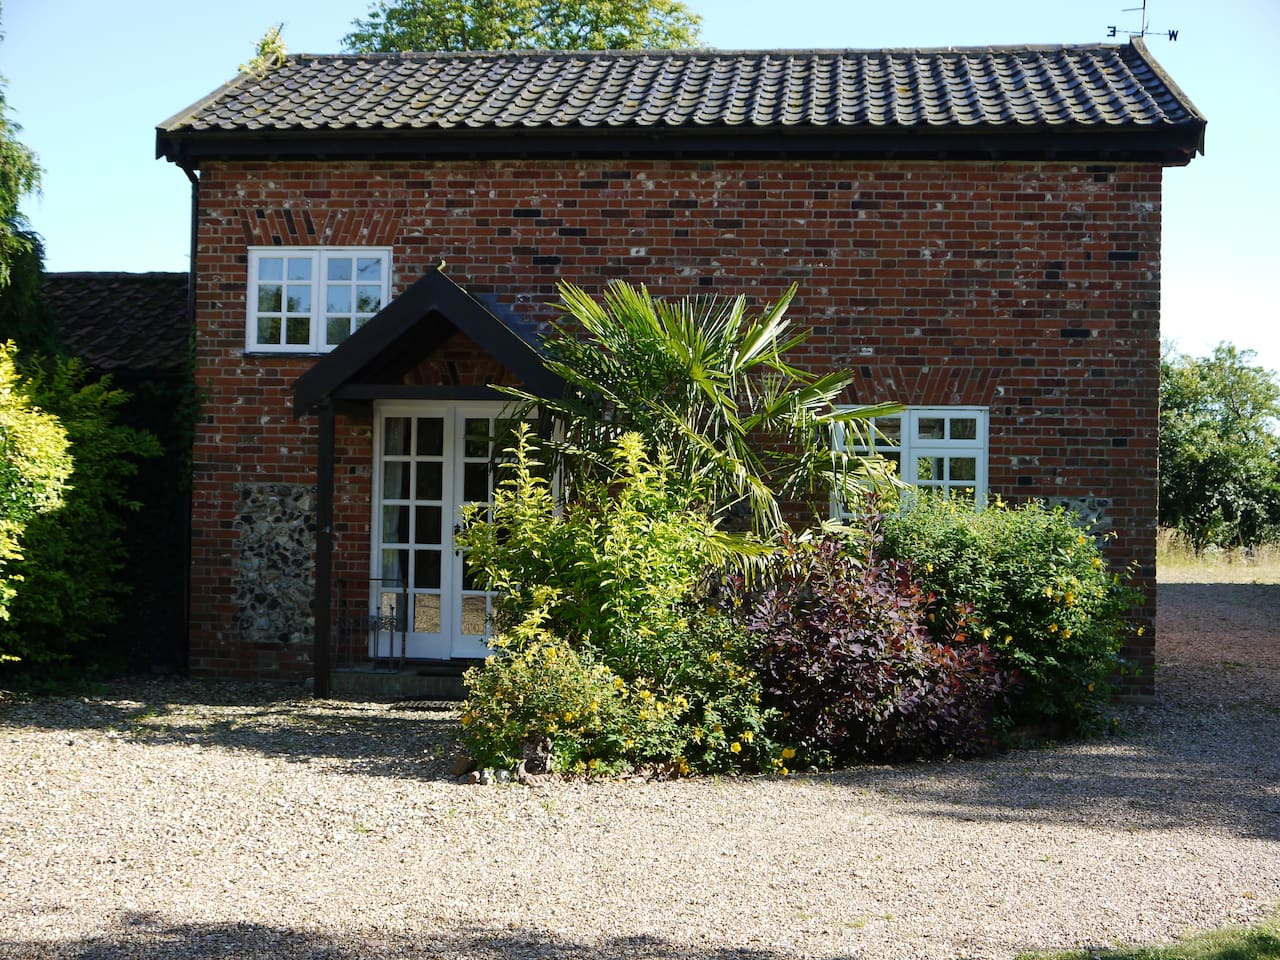 Rose Cottage set in a tranquil rural location.